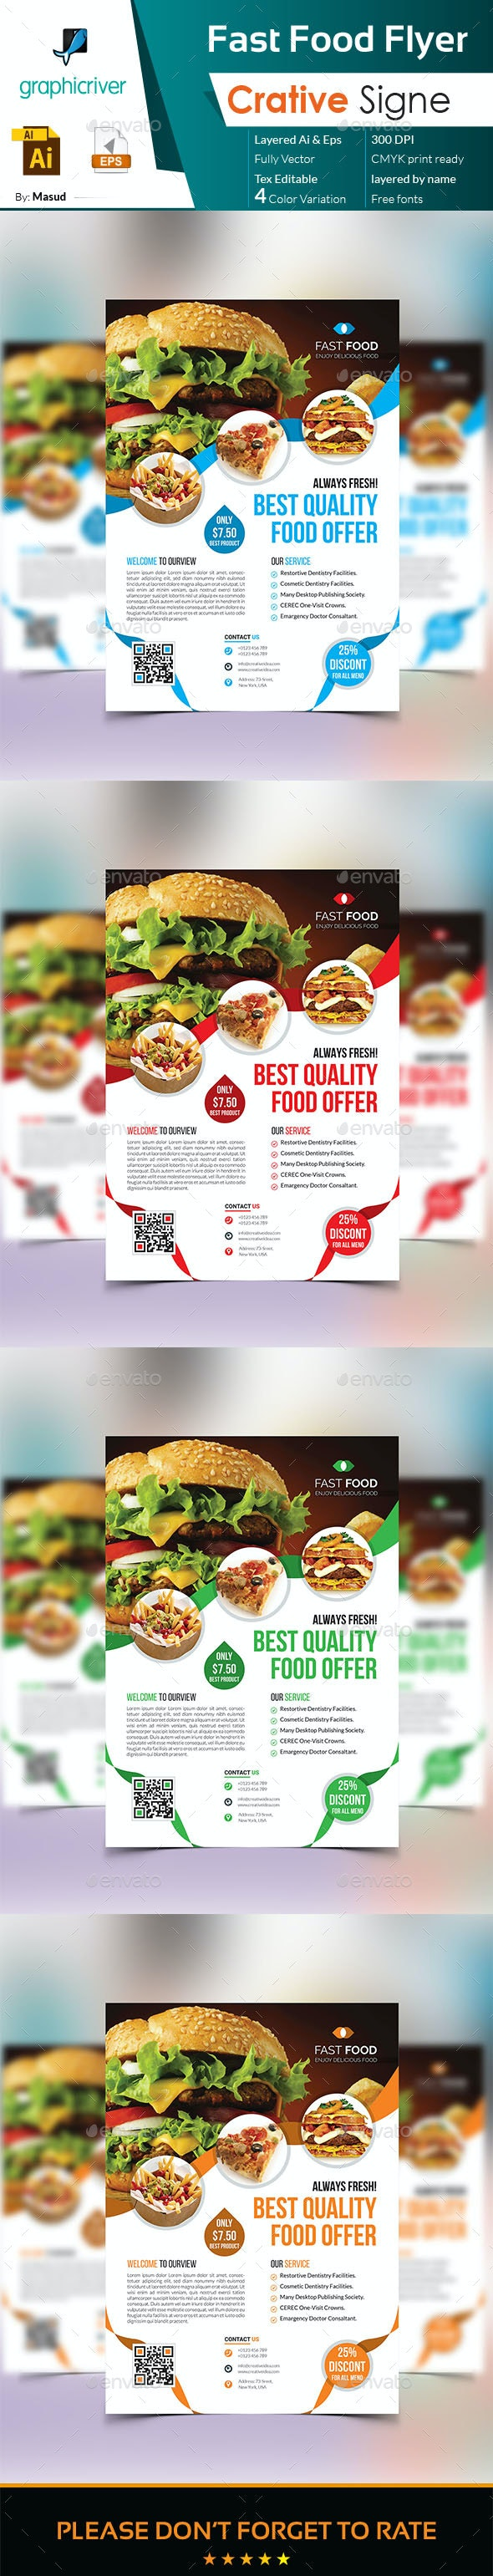 Fast Food Flyer - Restaurant Flyers